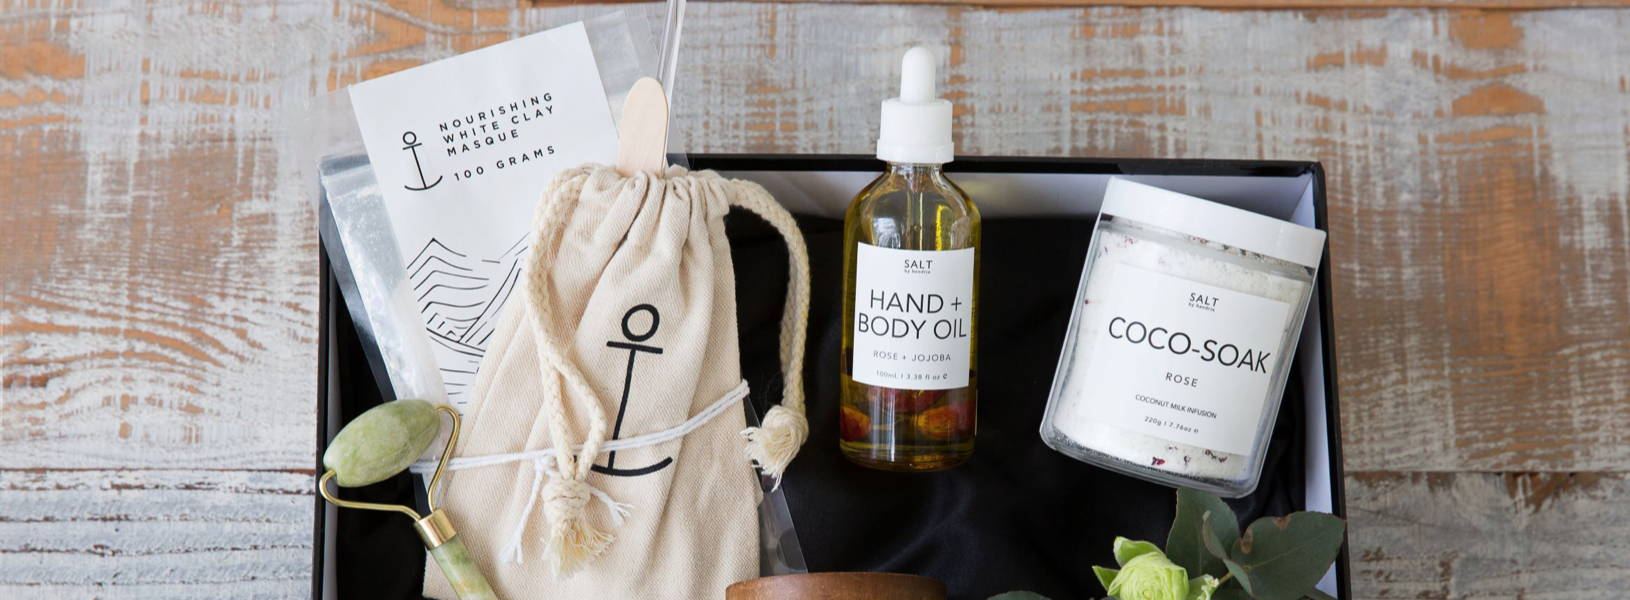 Natural Skin Care Products by Sal Remedia. Body Oil, Post partum Healing Bath Tea, Essential Oil Roller Blends and More